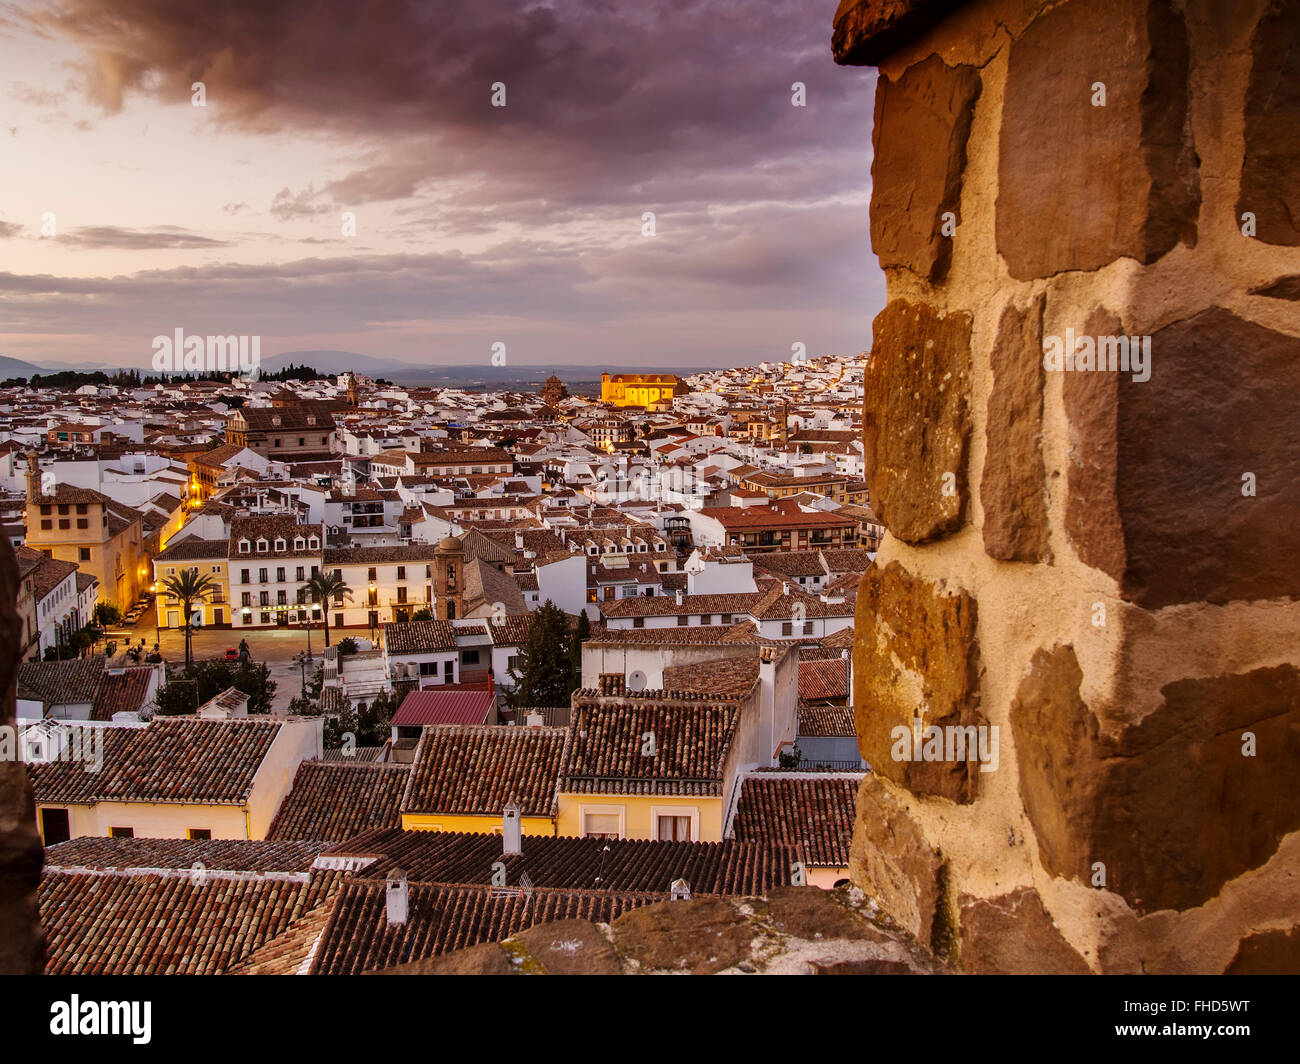 Sunset, monumental city Antequera, Malaga province. Andalusia southern Spain - Stock Image